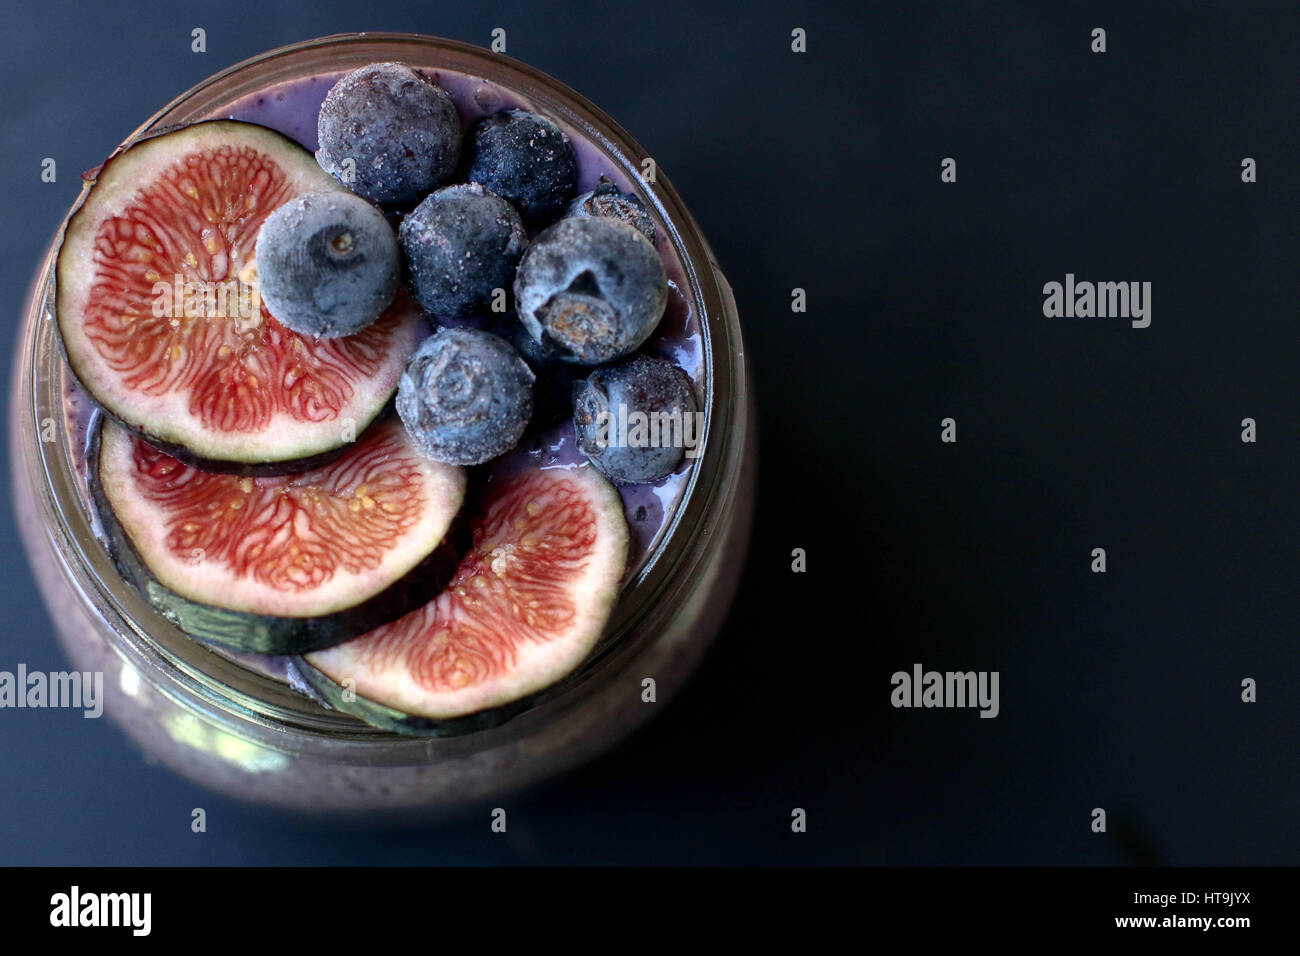 Healthy Blueberry and FIg Smoothie - Stock Image